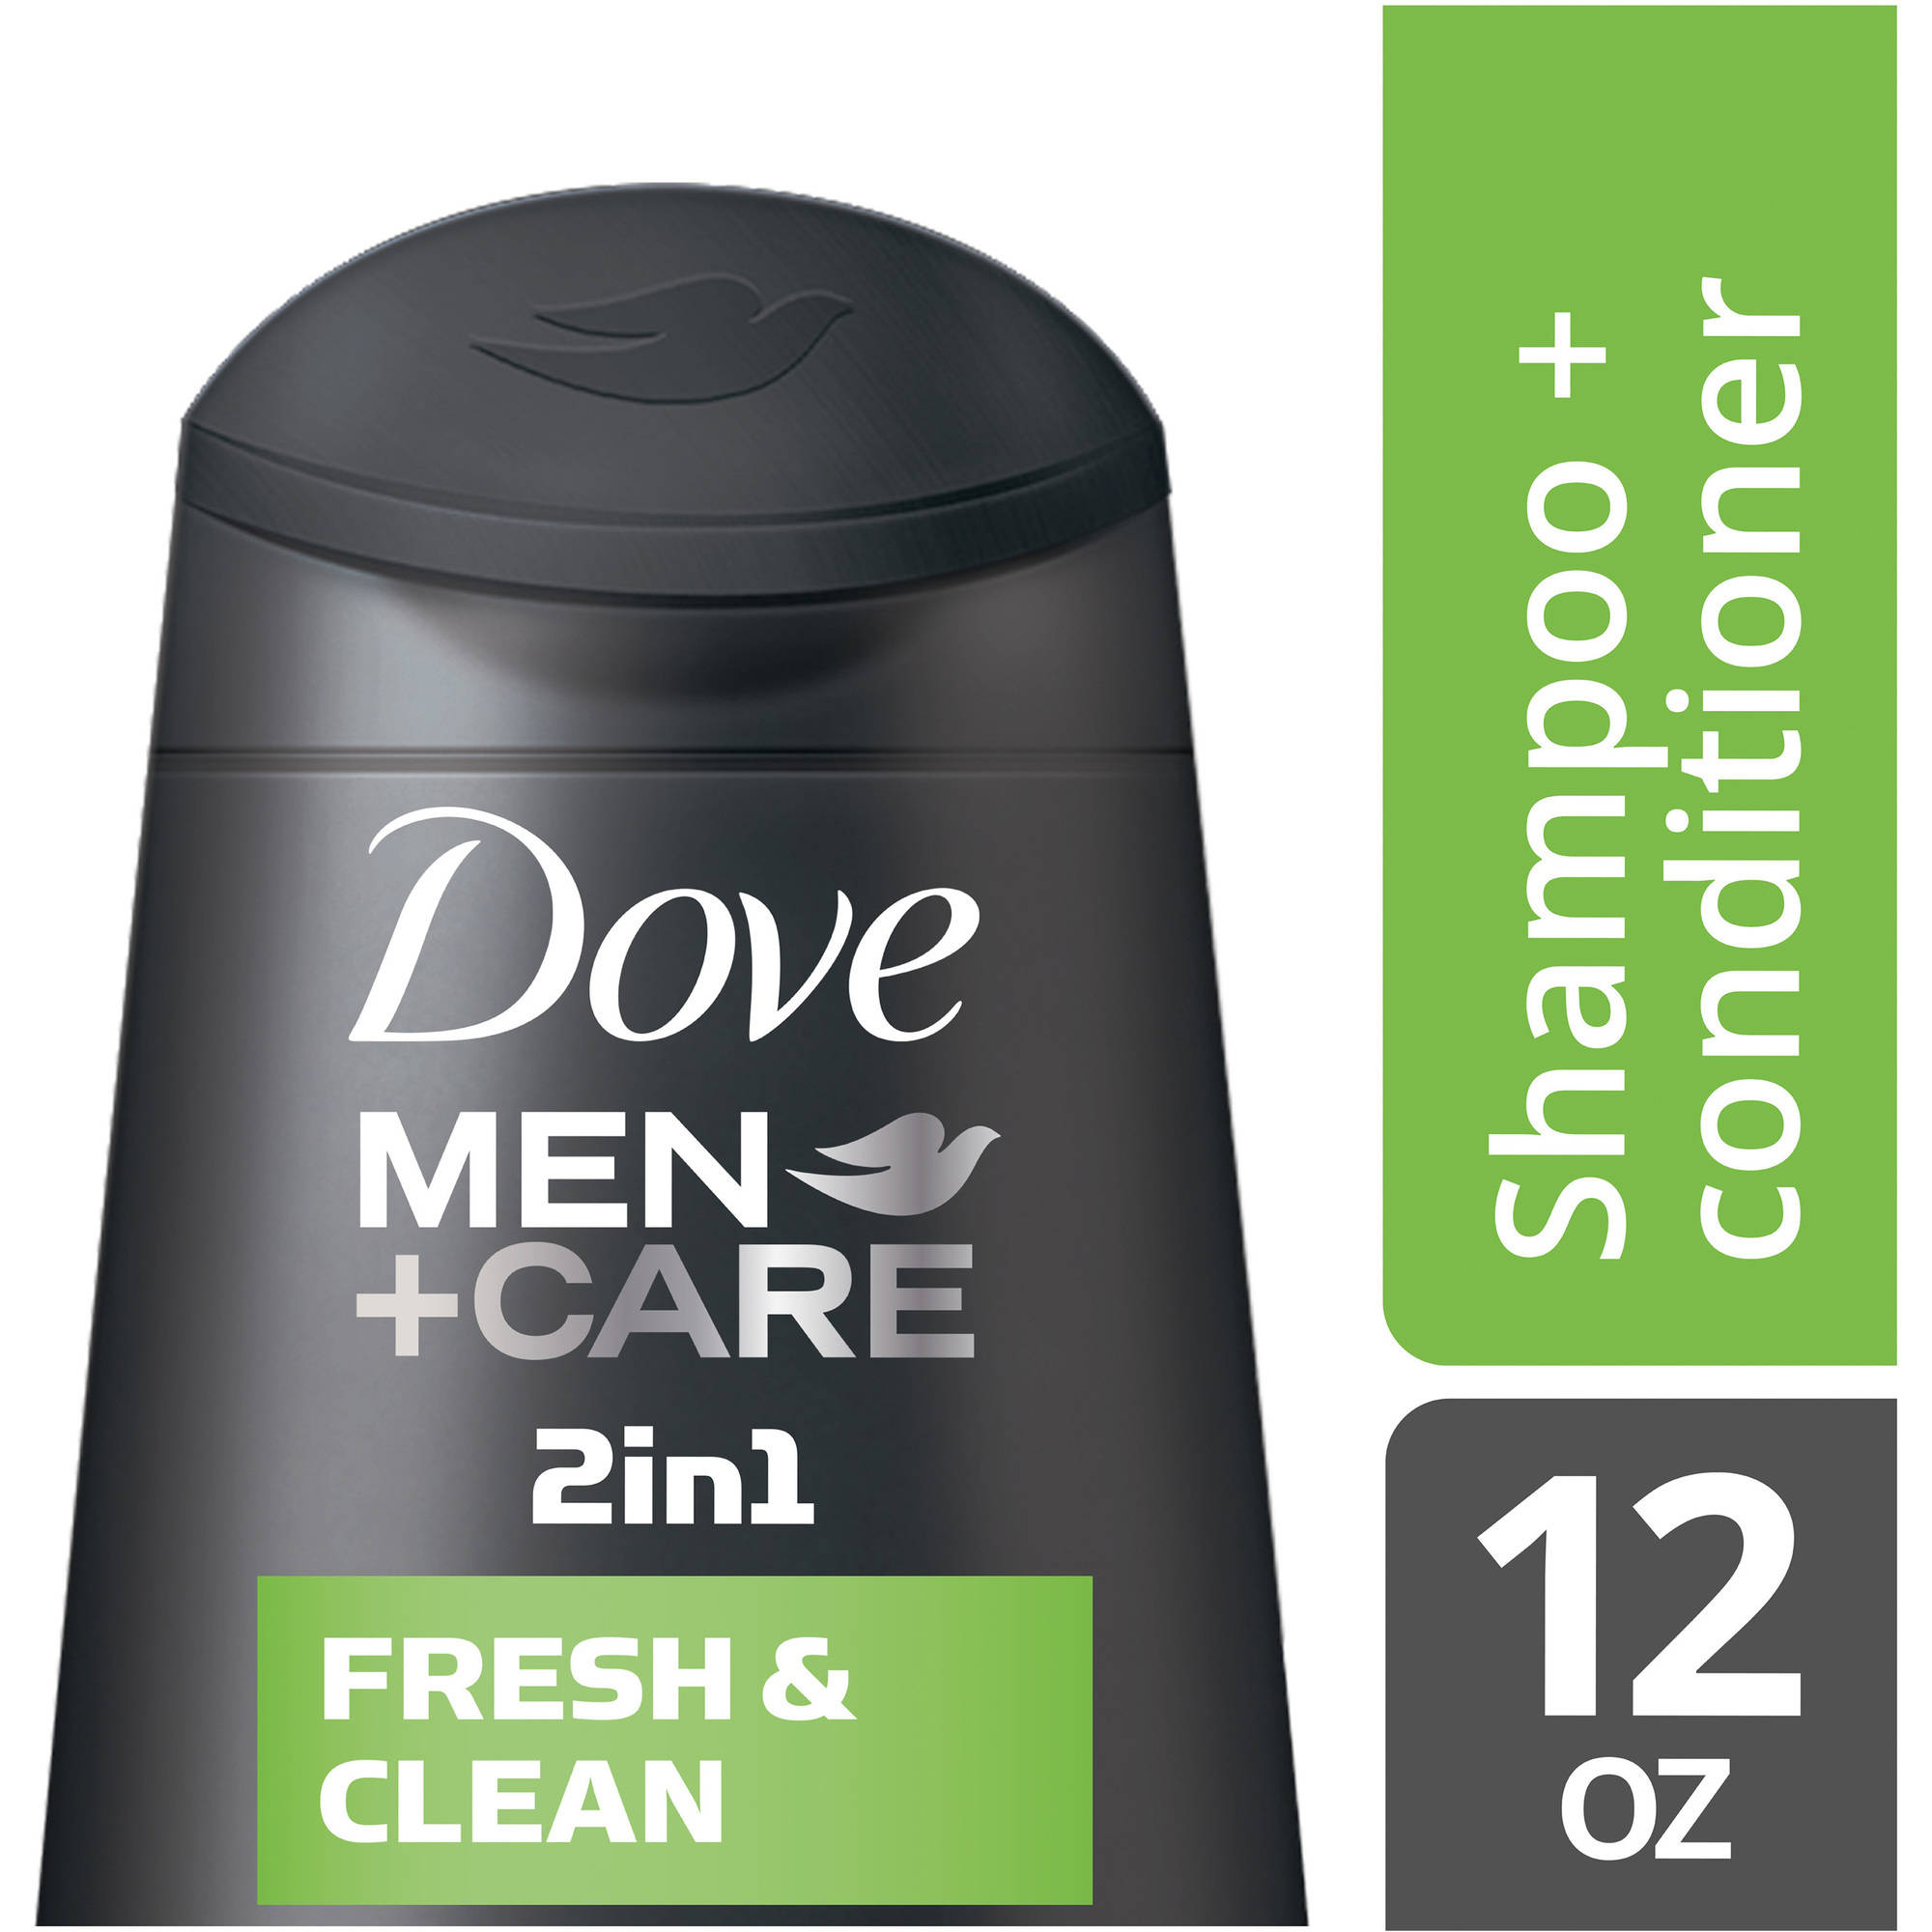 Dove Men+Care Fresh and Clean 2 in 1 Shampoo and Conditioner, 12 oz